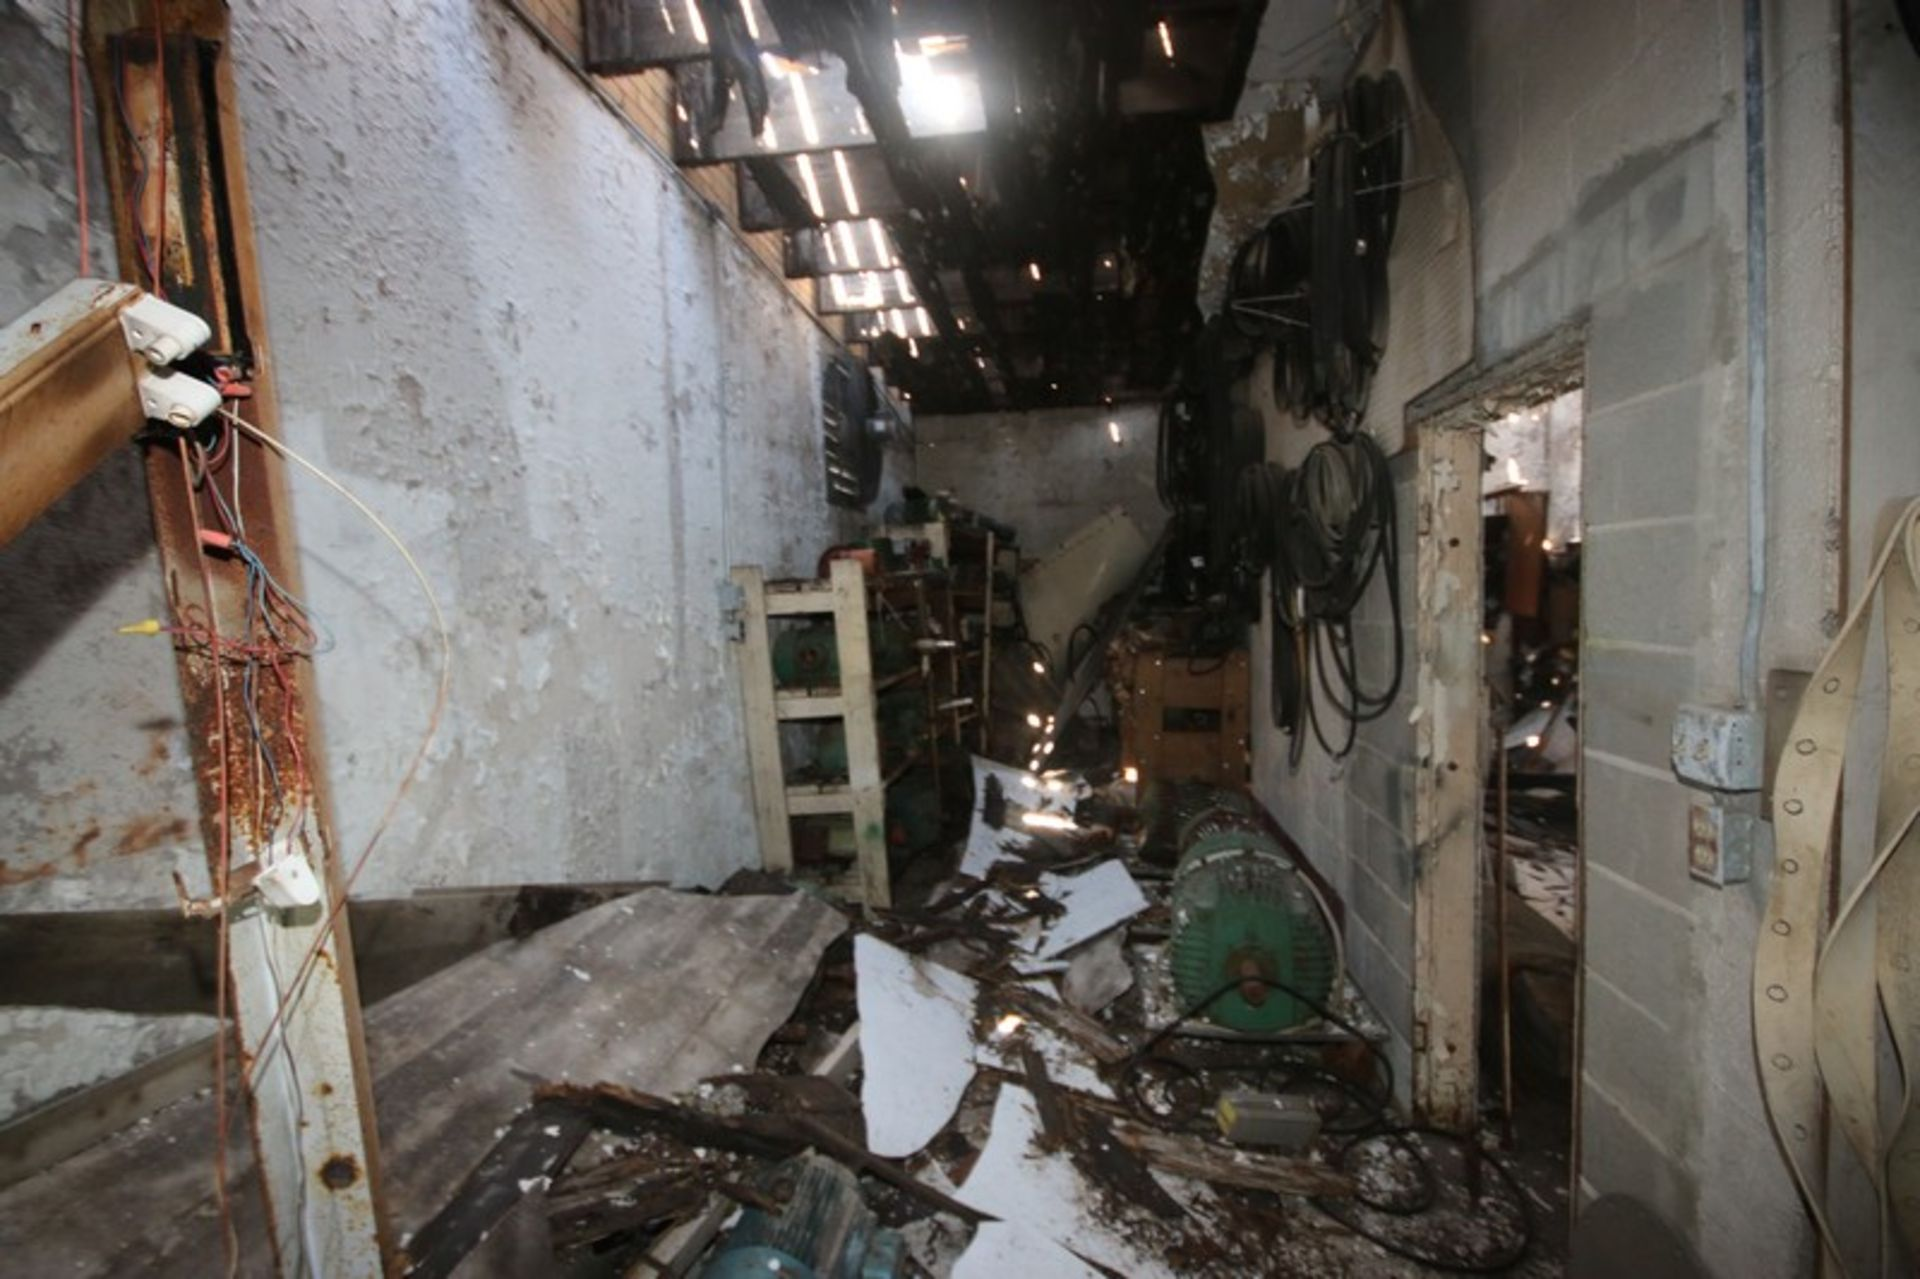 Contents of Parts Room, Includes Bearings, Stainless Steel Pipe, Motors, Belts, Electrical Wire, - Image 18 of 22